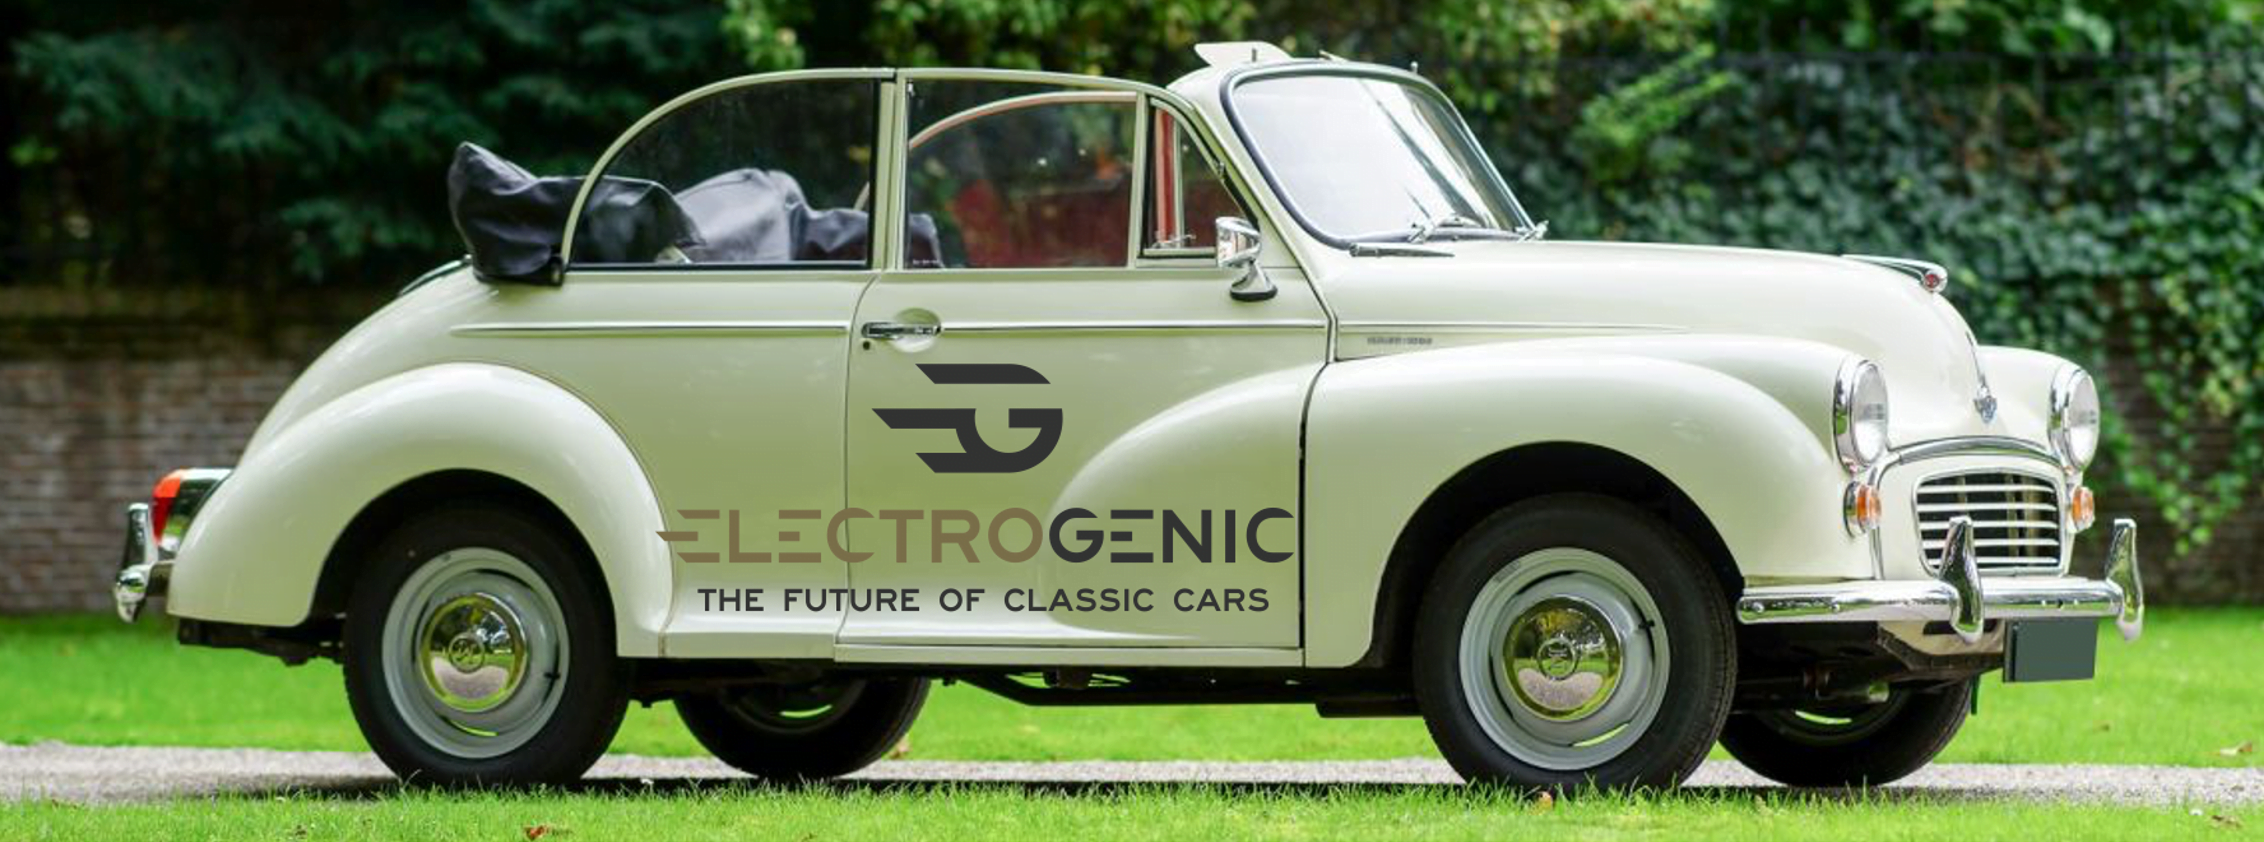 Morris Minor Electrogenic banner